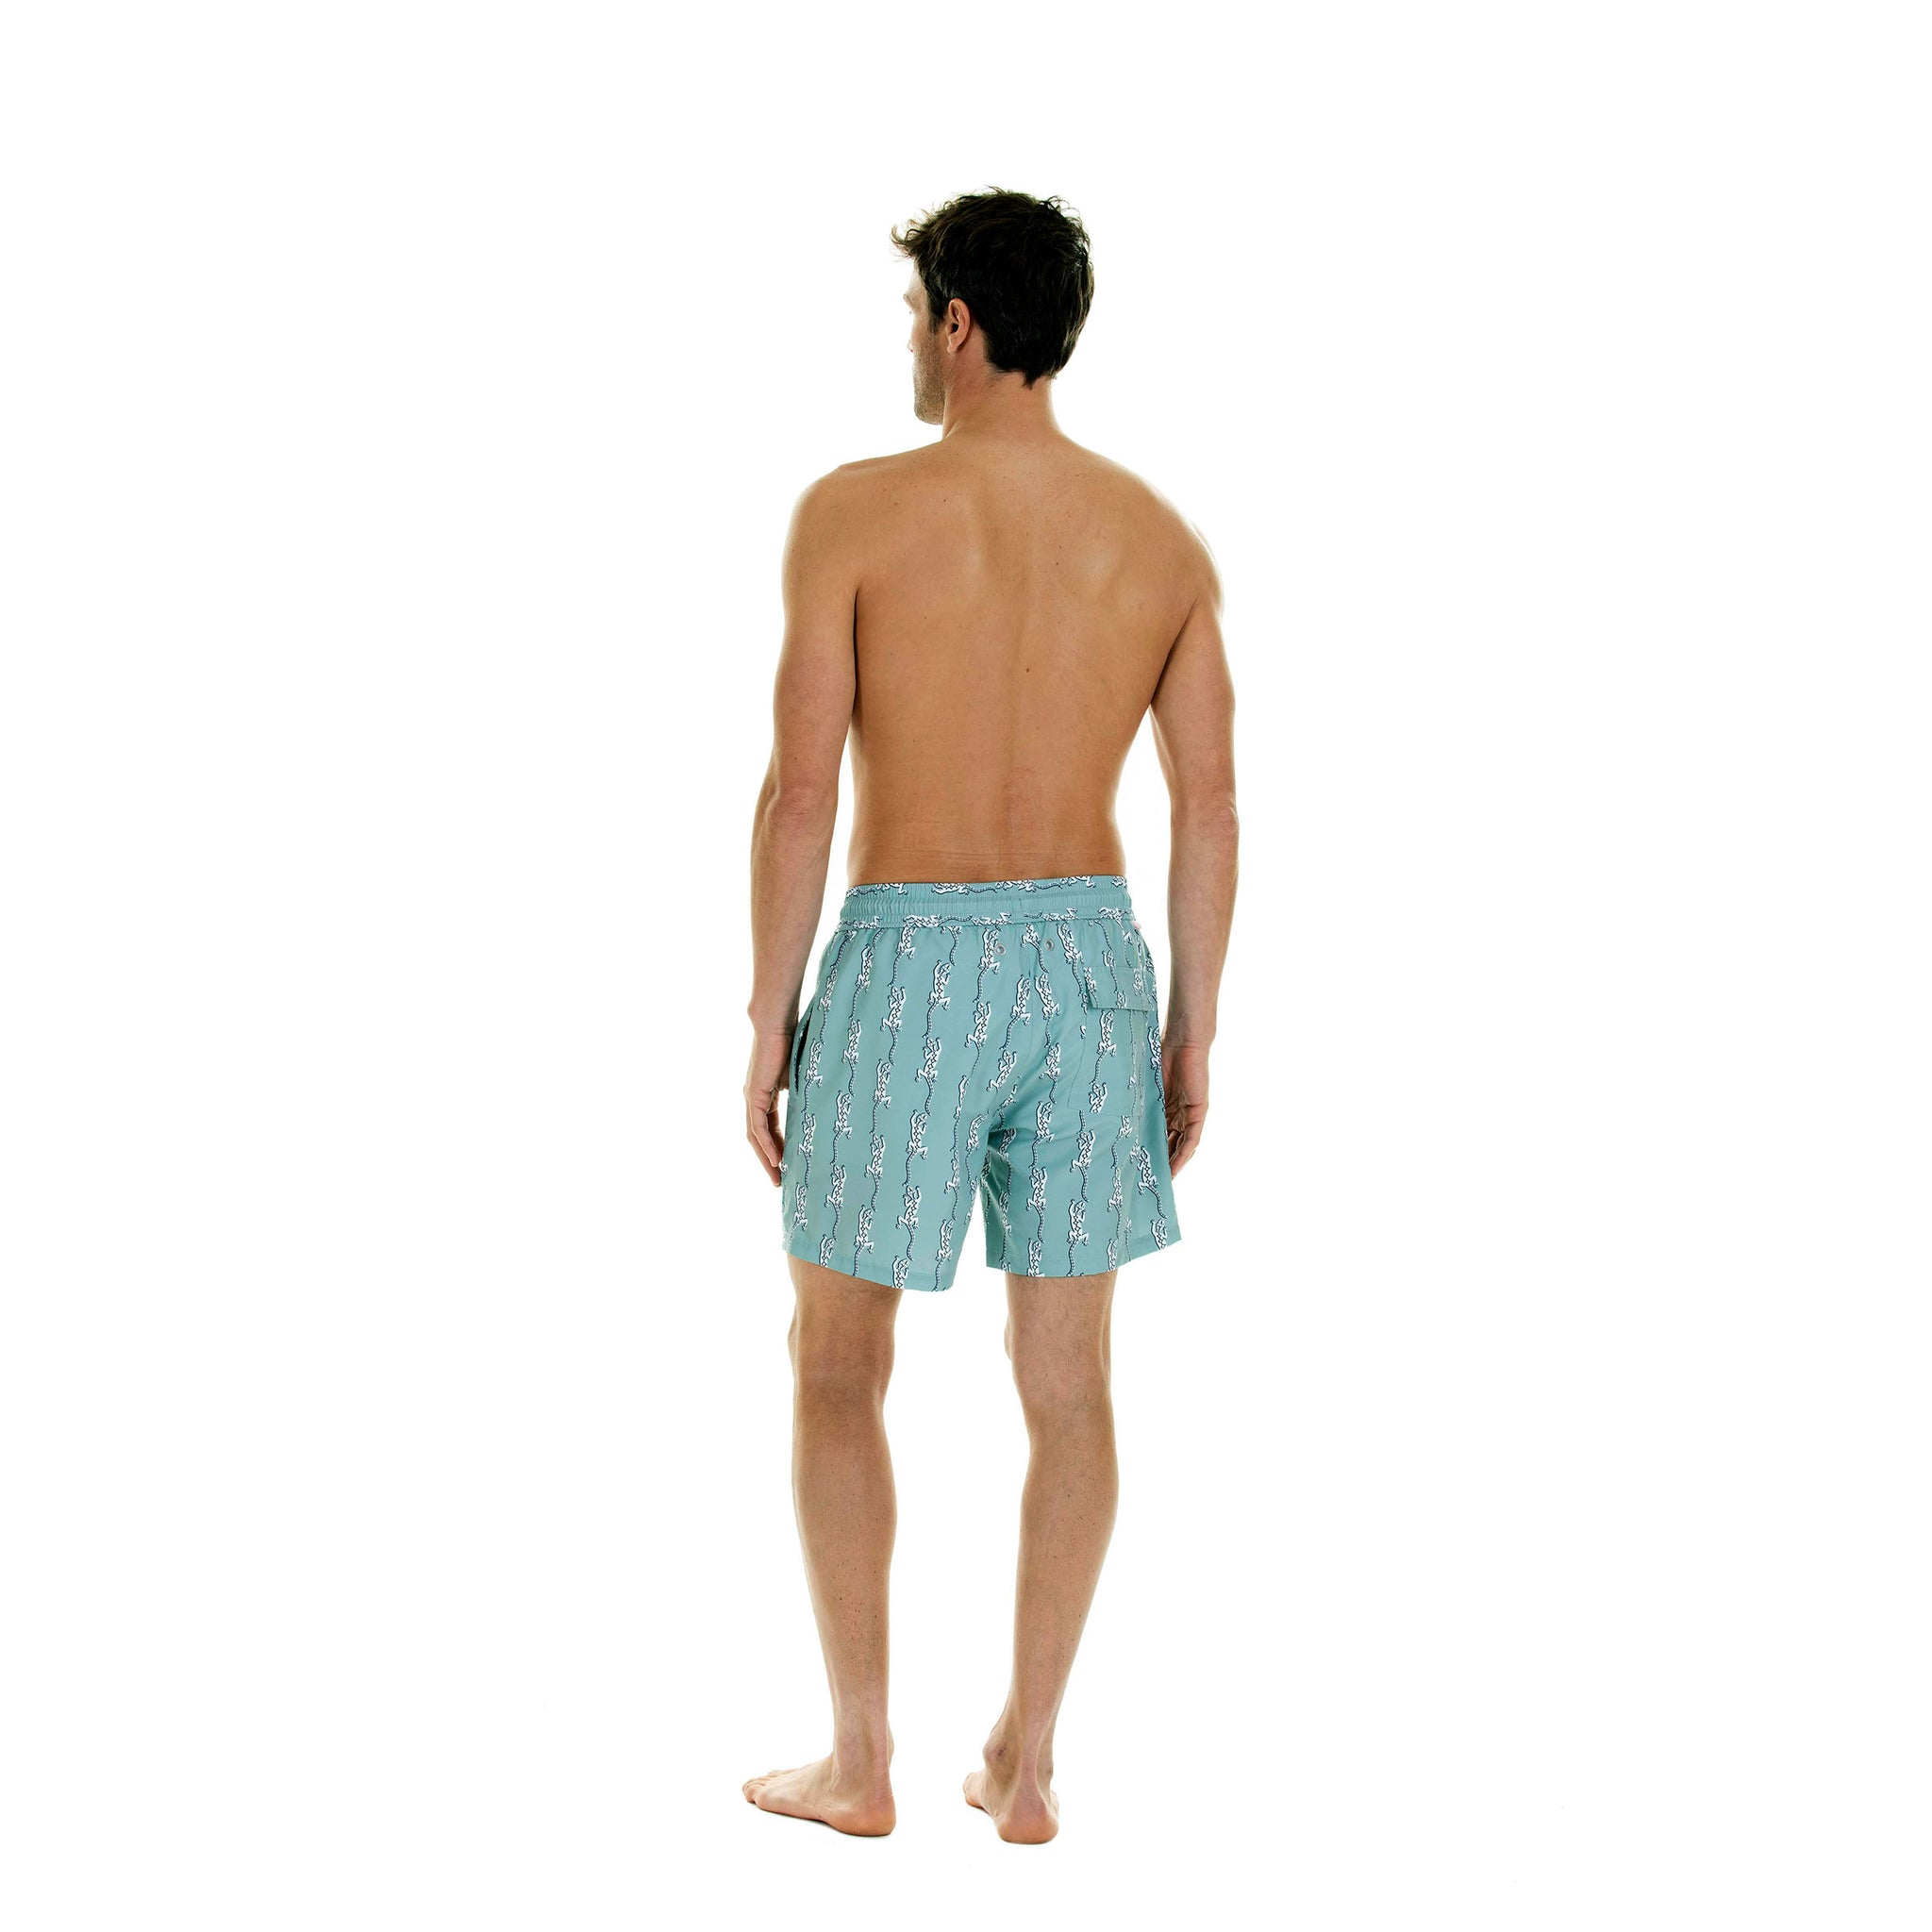 Men/'s Swim Trunks Beach Board Swimwear Shorts Flying Feather Swimming Short Pants Quick Dry Water Shorts Mesh Lining